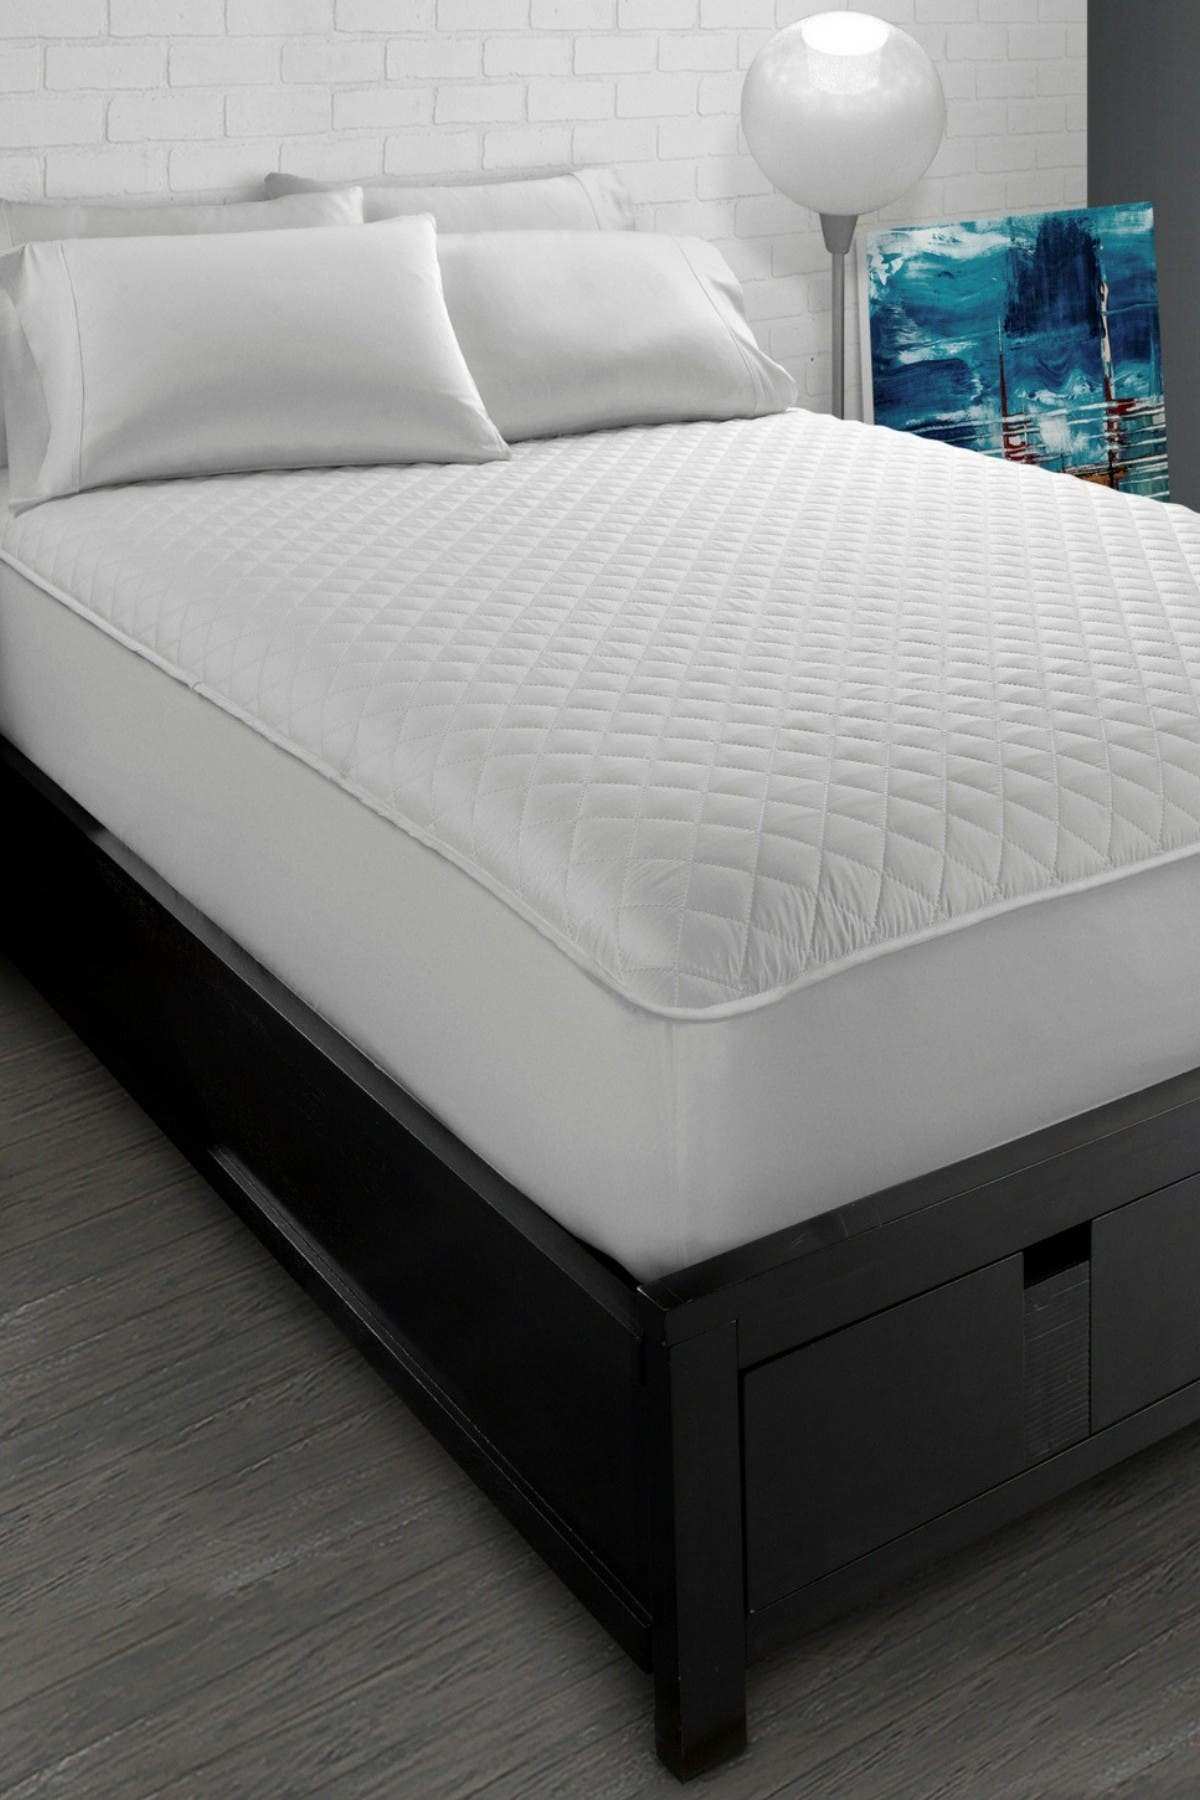 Image of Ella Jayne White Classic Quilted Twin XL Mattress Protector